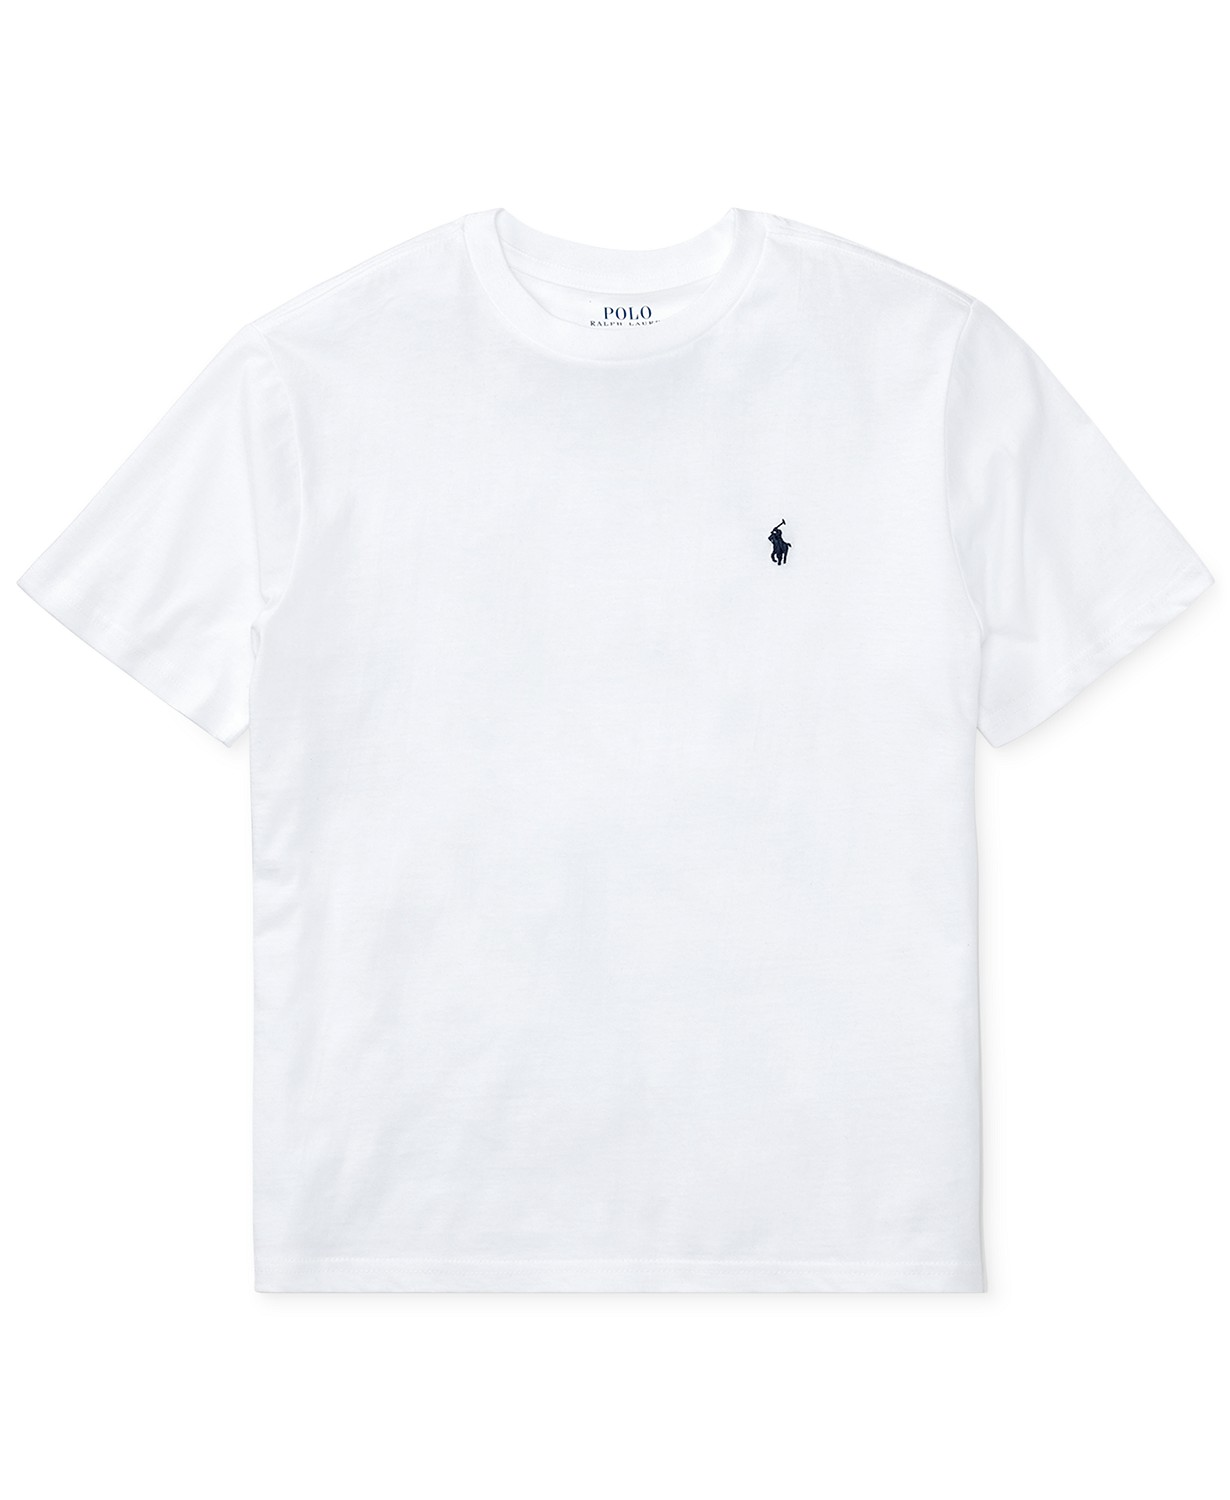 Save 25% on Polo Ralph Lauren Big Boys Tee